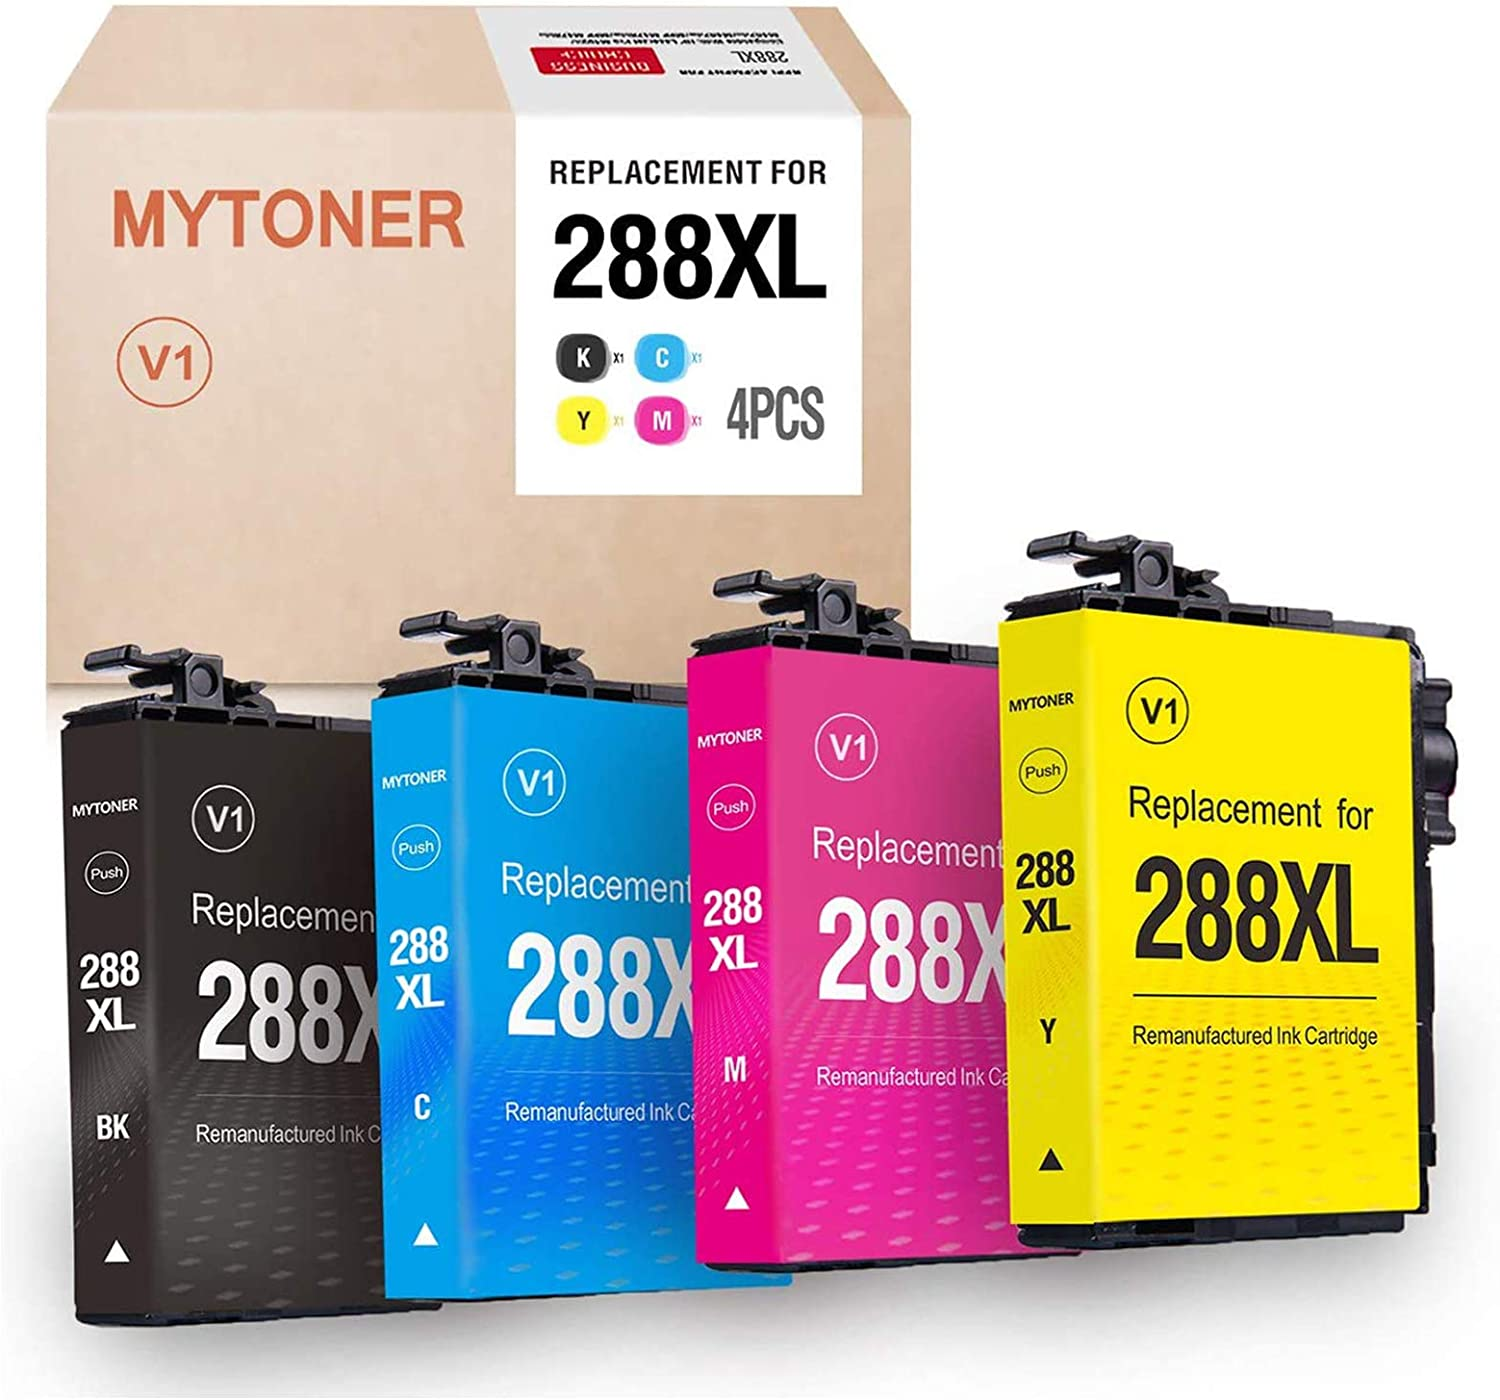 MYTONER Remanufactured Ink Cartridge Replacement for Epson 288XL 288 XL T288XL Ink Cartridges for Expression Home XP-440 XP-430 XP-340 XP-330 XP-446 XP-434(Black, Cyan, Magenta, Yellow, 4-Pack )